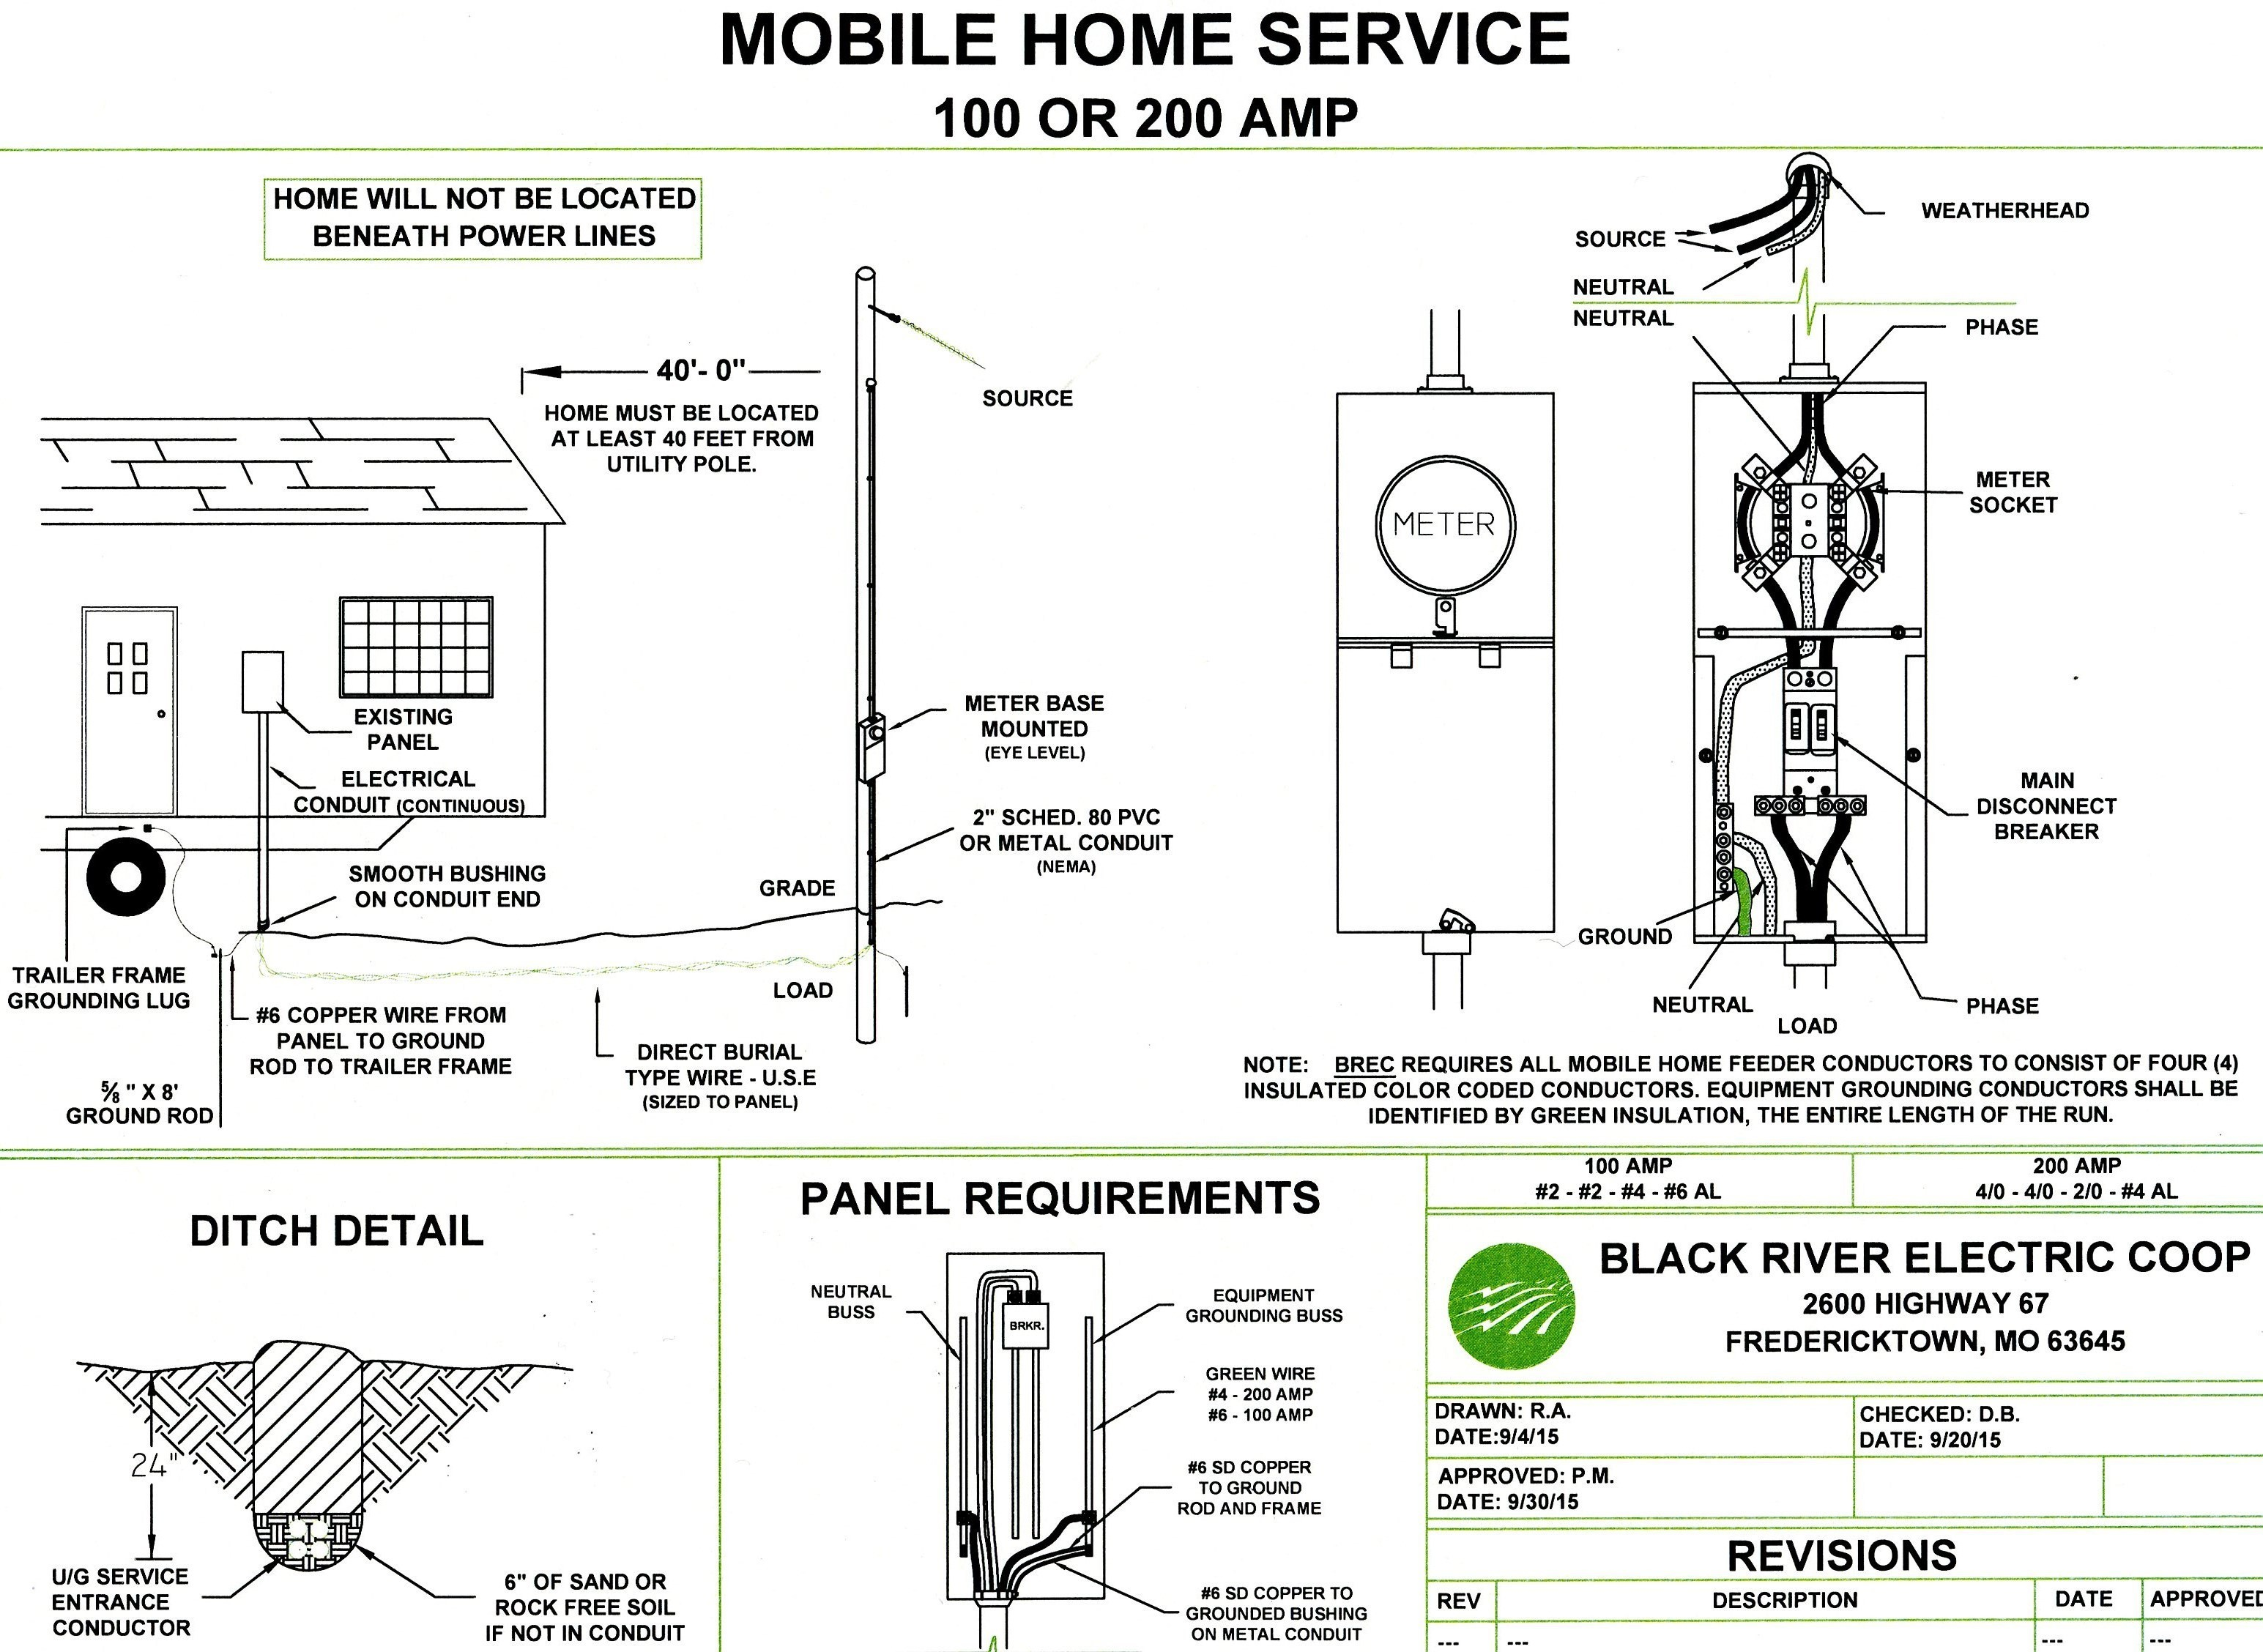 Mobile Home Meter And Breaker Box Wiring - Wiring Diagrams Lol on service disconnect plug, electrical service diagram, service disconnect switch, solar microinverters diagram, 200 amp meter base diagram, service meter box, service electrical schematic, rv 50 amp service diagram, solar grid inverter diagram, underground electric service diagram, 200 amp service diagram,